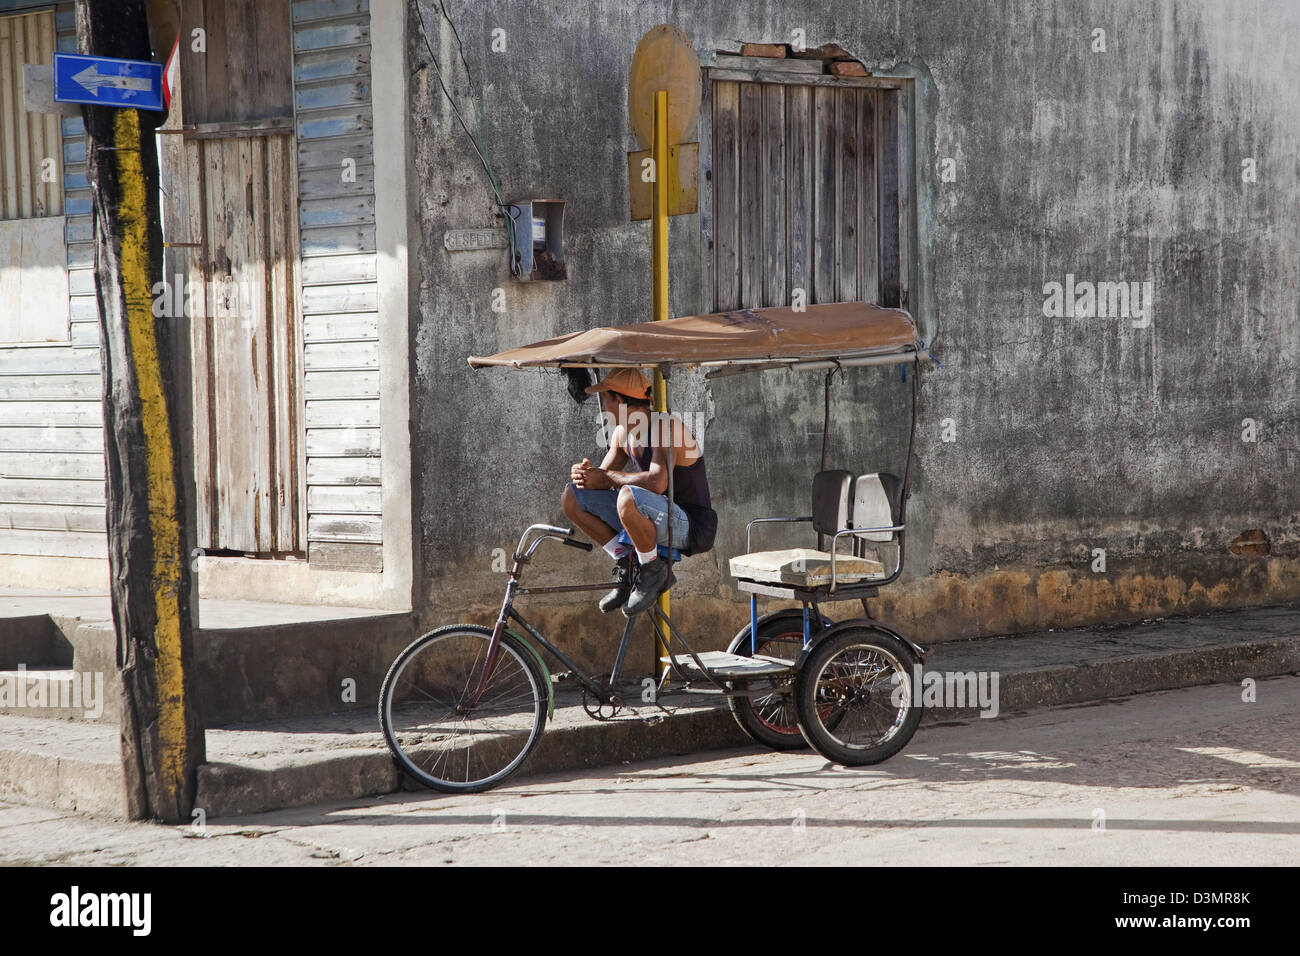 Man on three-wheeled bicycle taxi waiting for tourists in the city Baracoa, Guantánamo Province, Cuba, Caribbean - Stock Image